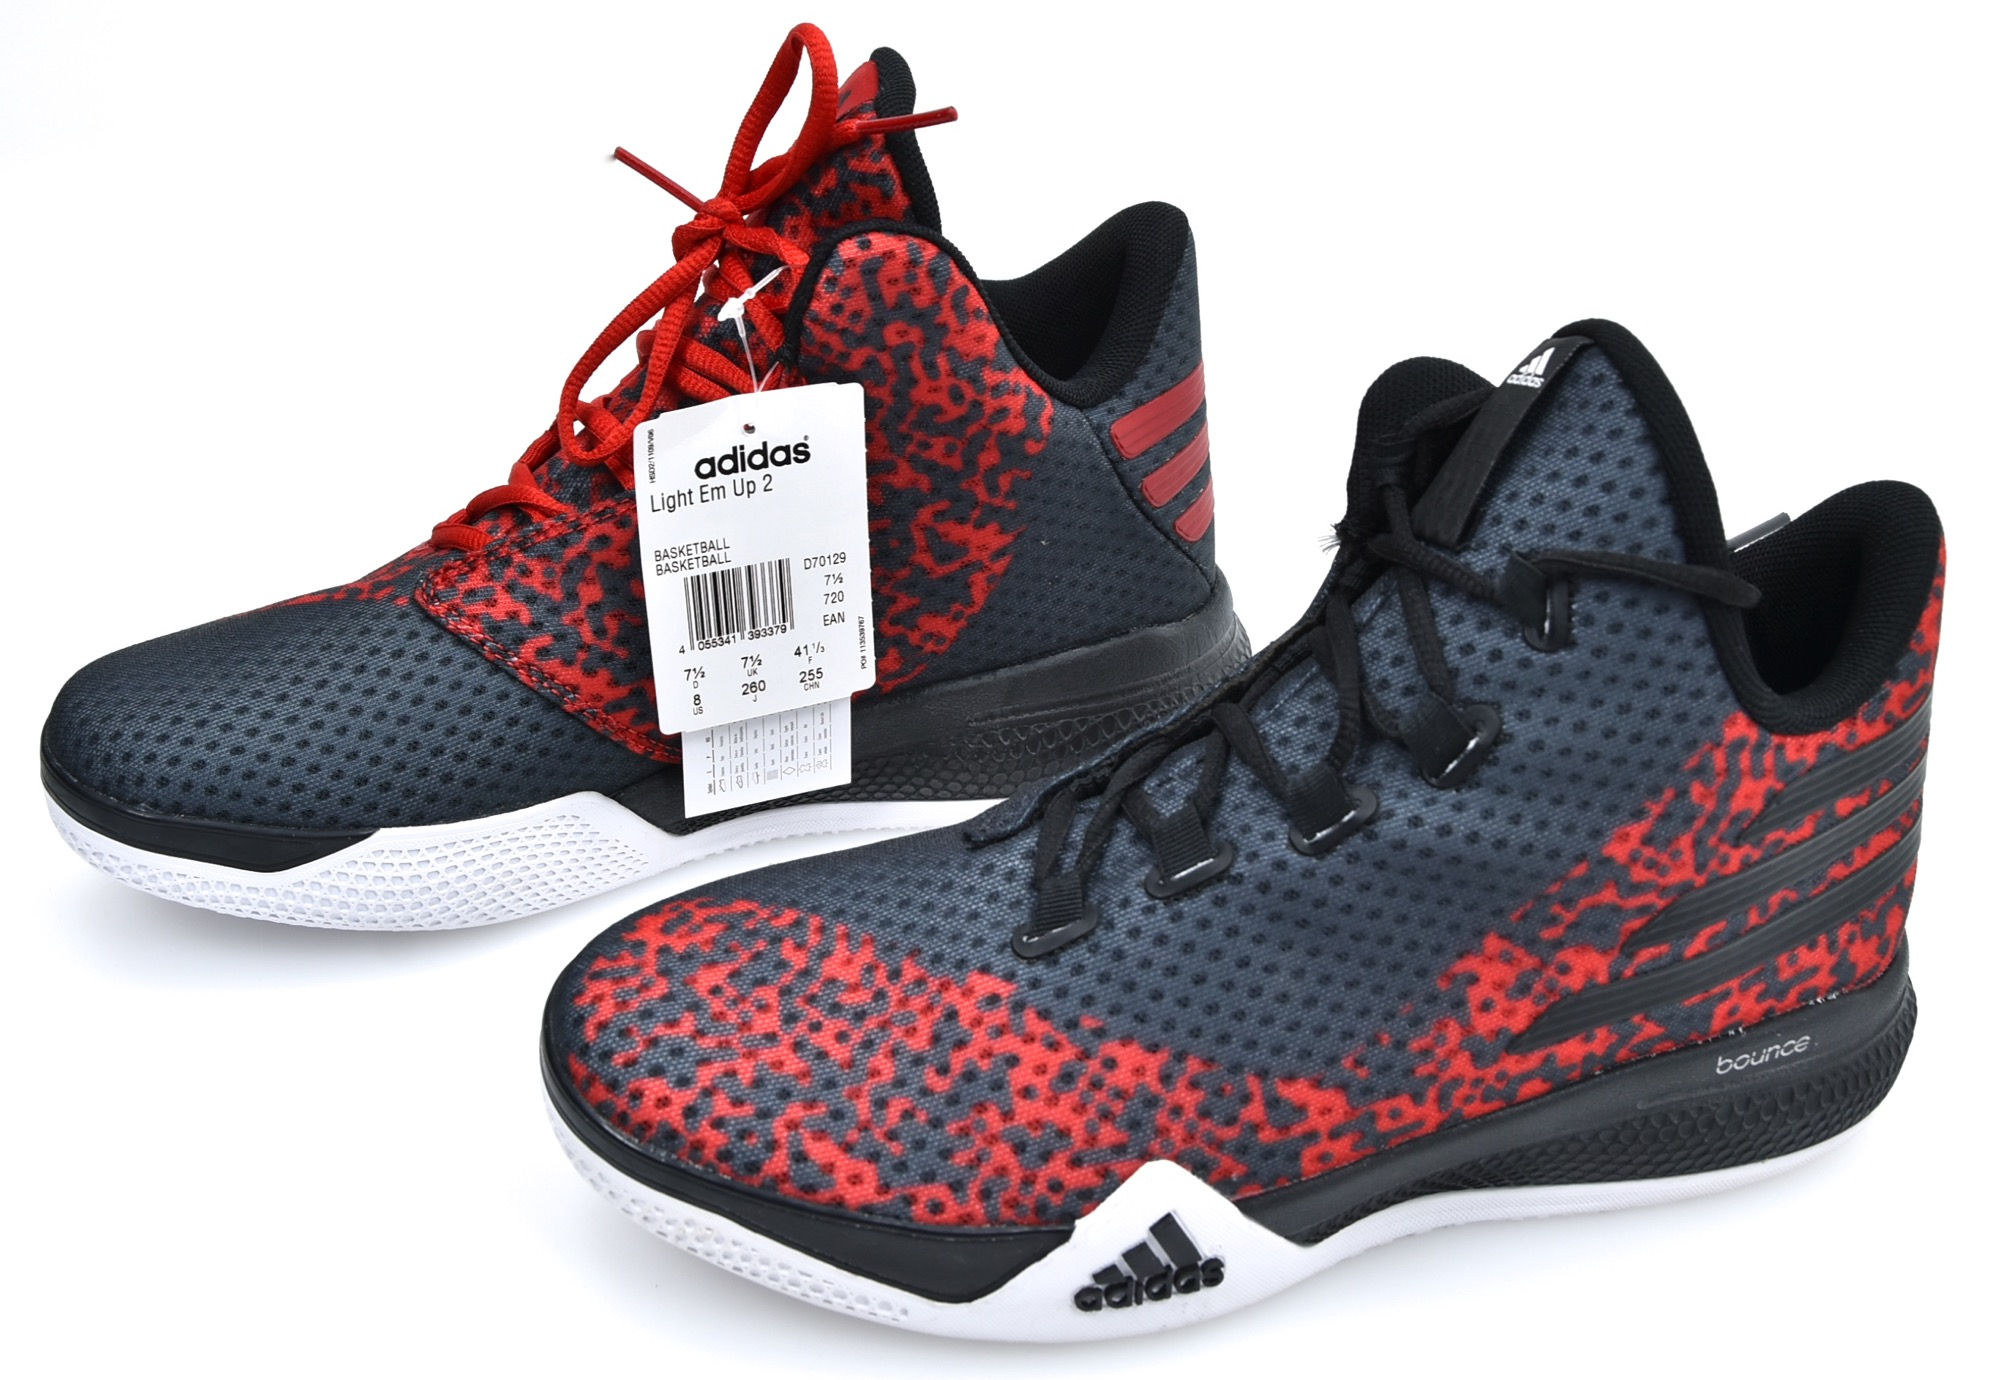 d8ac3fc14fc0 ADIDAS MAN BASKETBALL SPORTS SNEAKER SHOES SYNTHETIC CODE D70129 LIGHT EM  UP 2